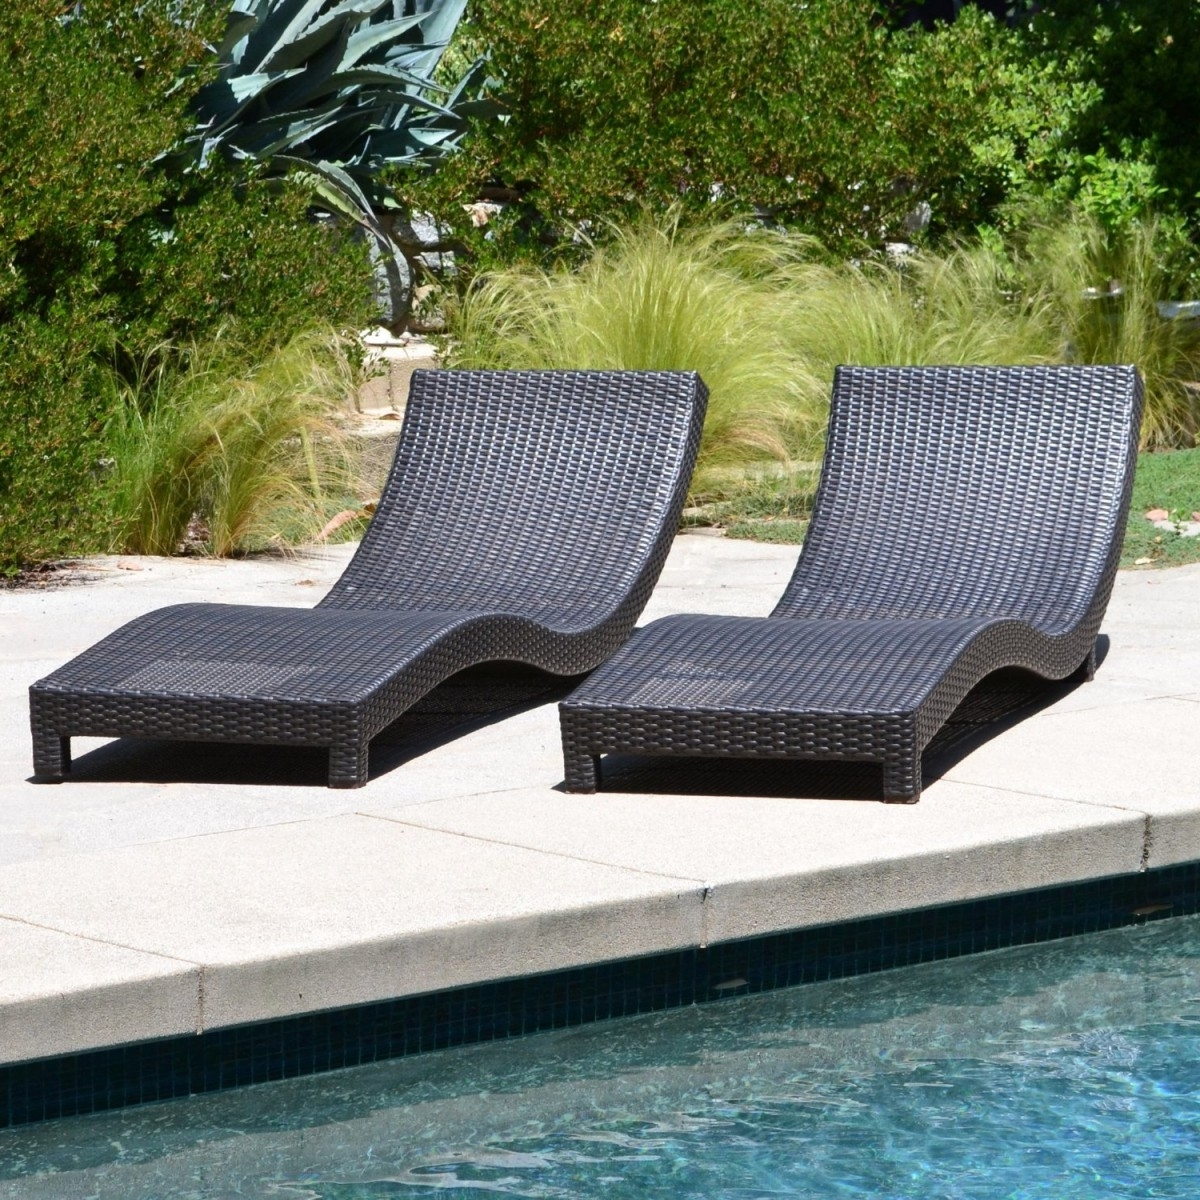 Modern Outdoor Chaise Lounge Chairs Inside 2018 Modern Living Outdoor Chaise Lounge Chairs W/ Cushions (View 12 of 15)